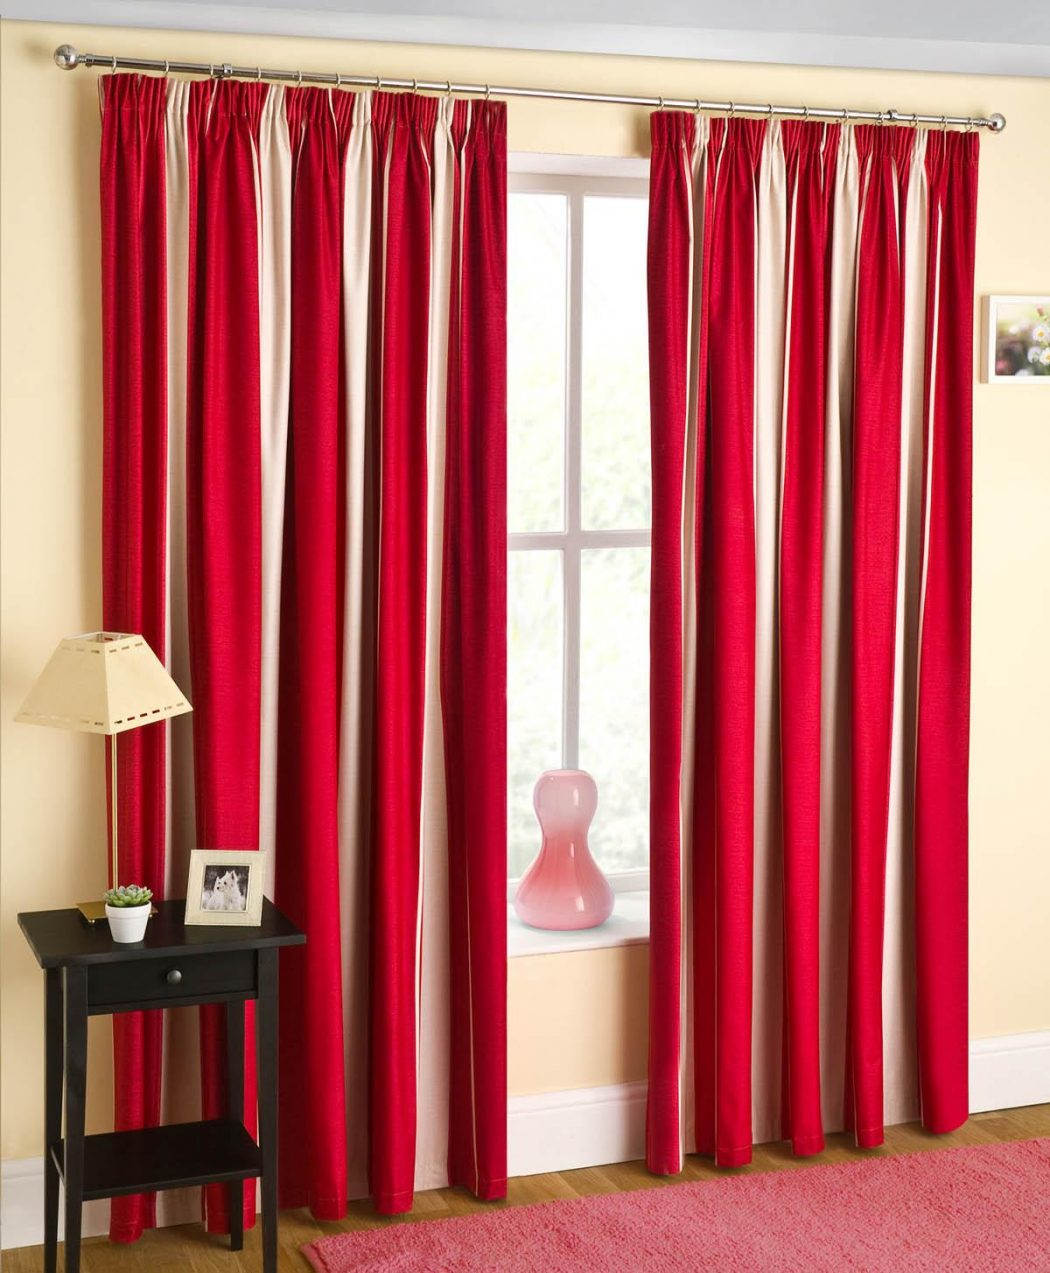 TWILIGHT-RED 20+ Hottest Curtain Design Ideas for 2021